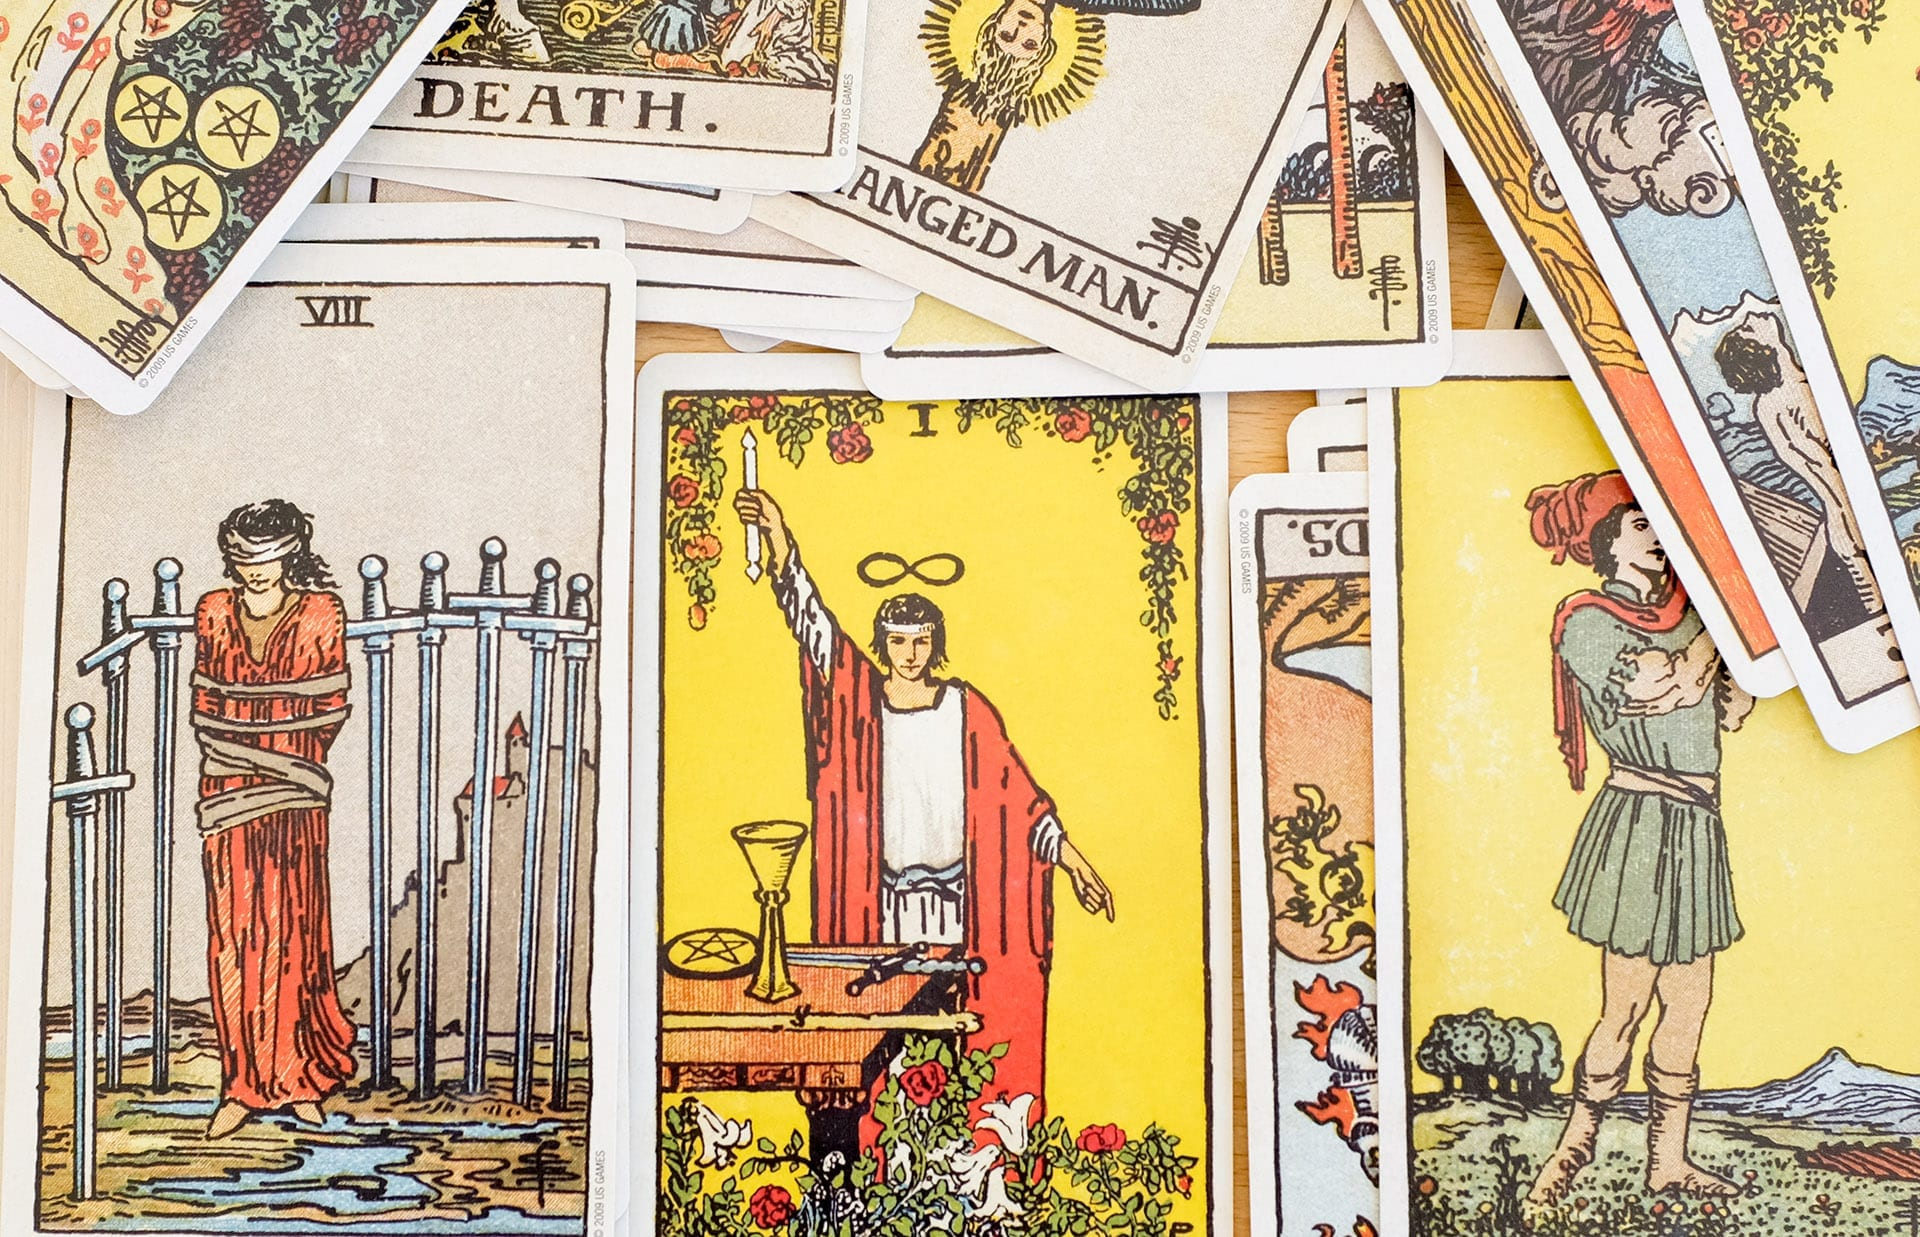 WHAT DO TAROT CARDS HAVE TO DO WITH FREEMASONRY?